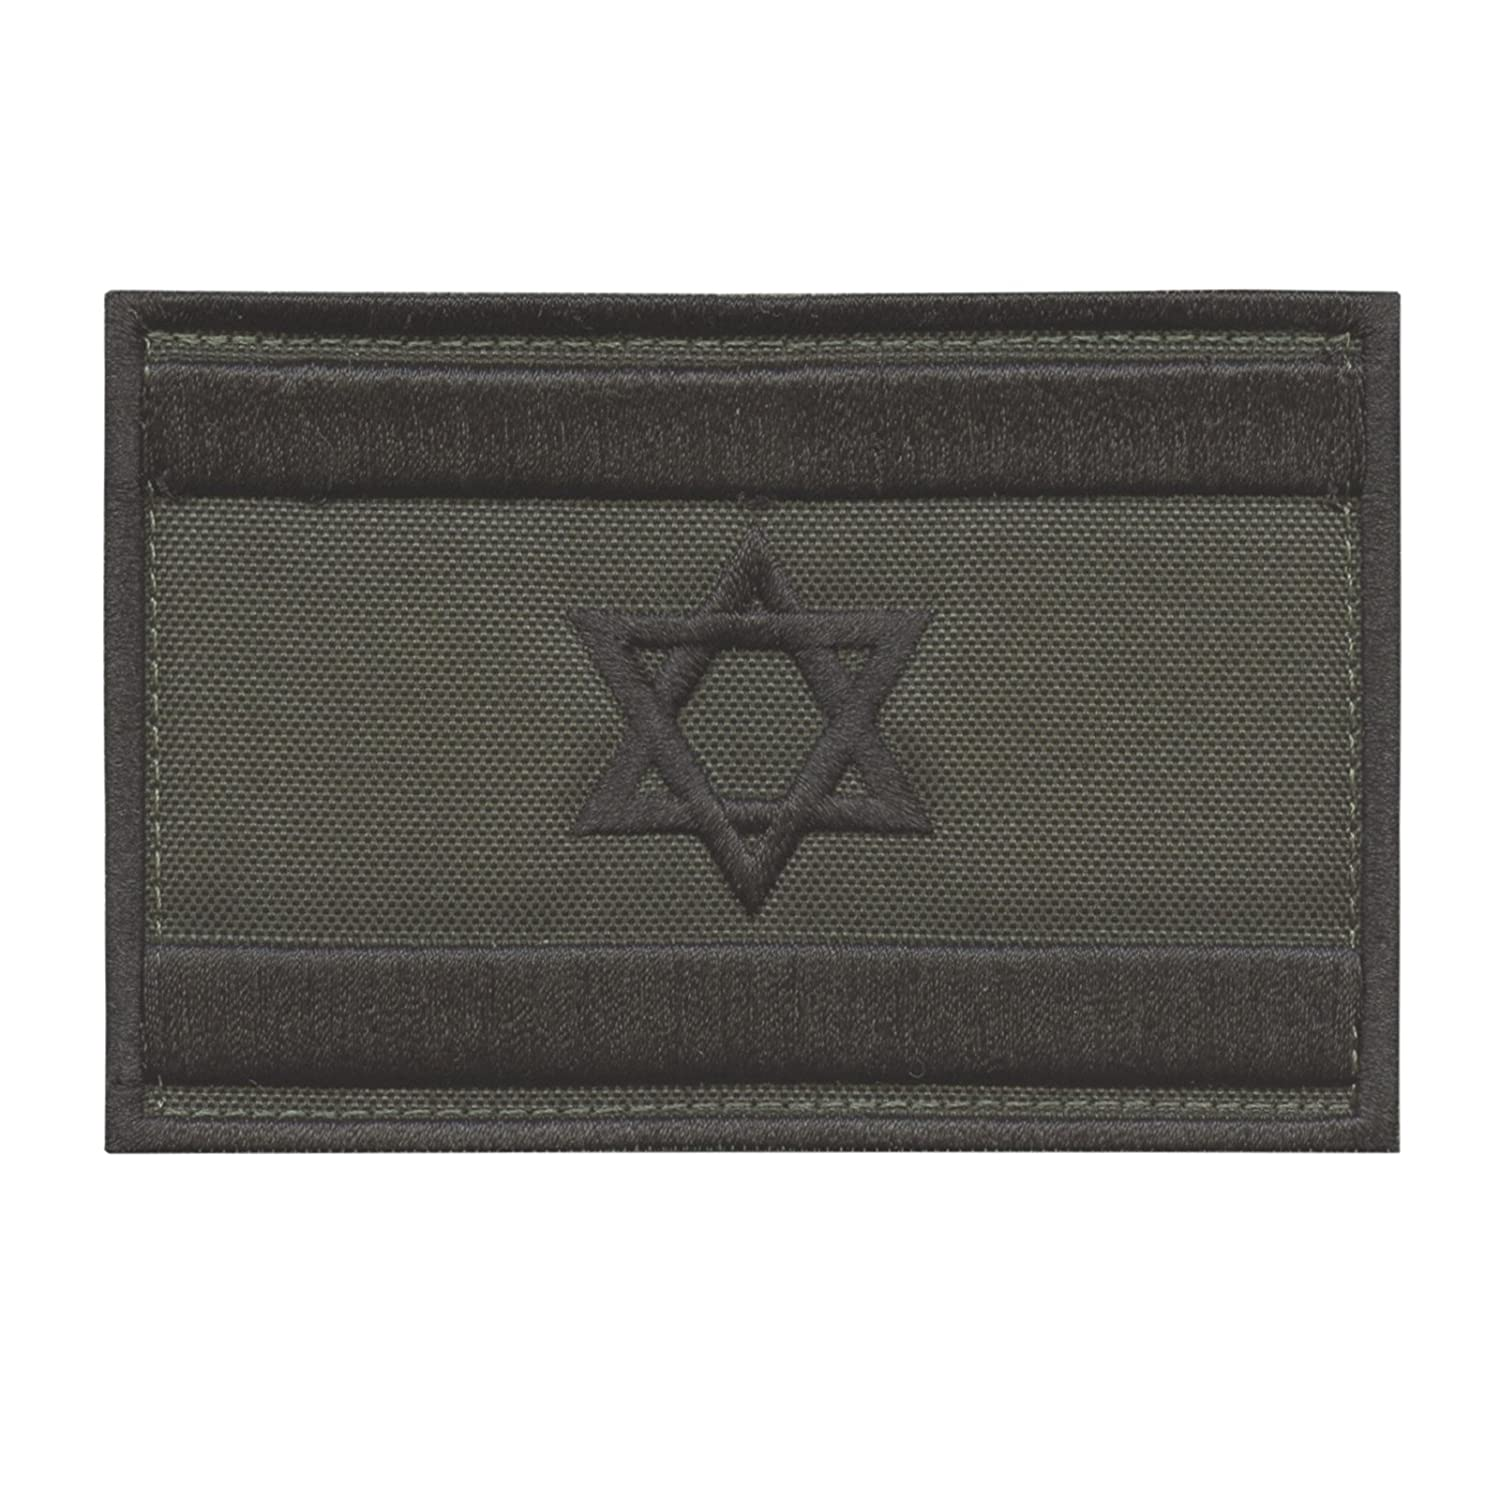 Olive Drab OD Israel Flag IDF Arid Morale Star David Army Embroidery Sew Iron on Patch 2AFTER1 P.1644.300.C